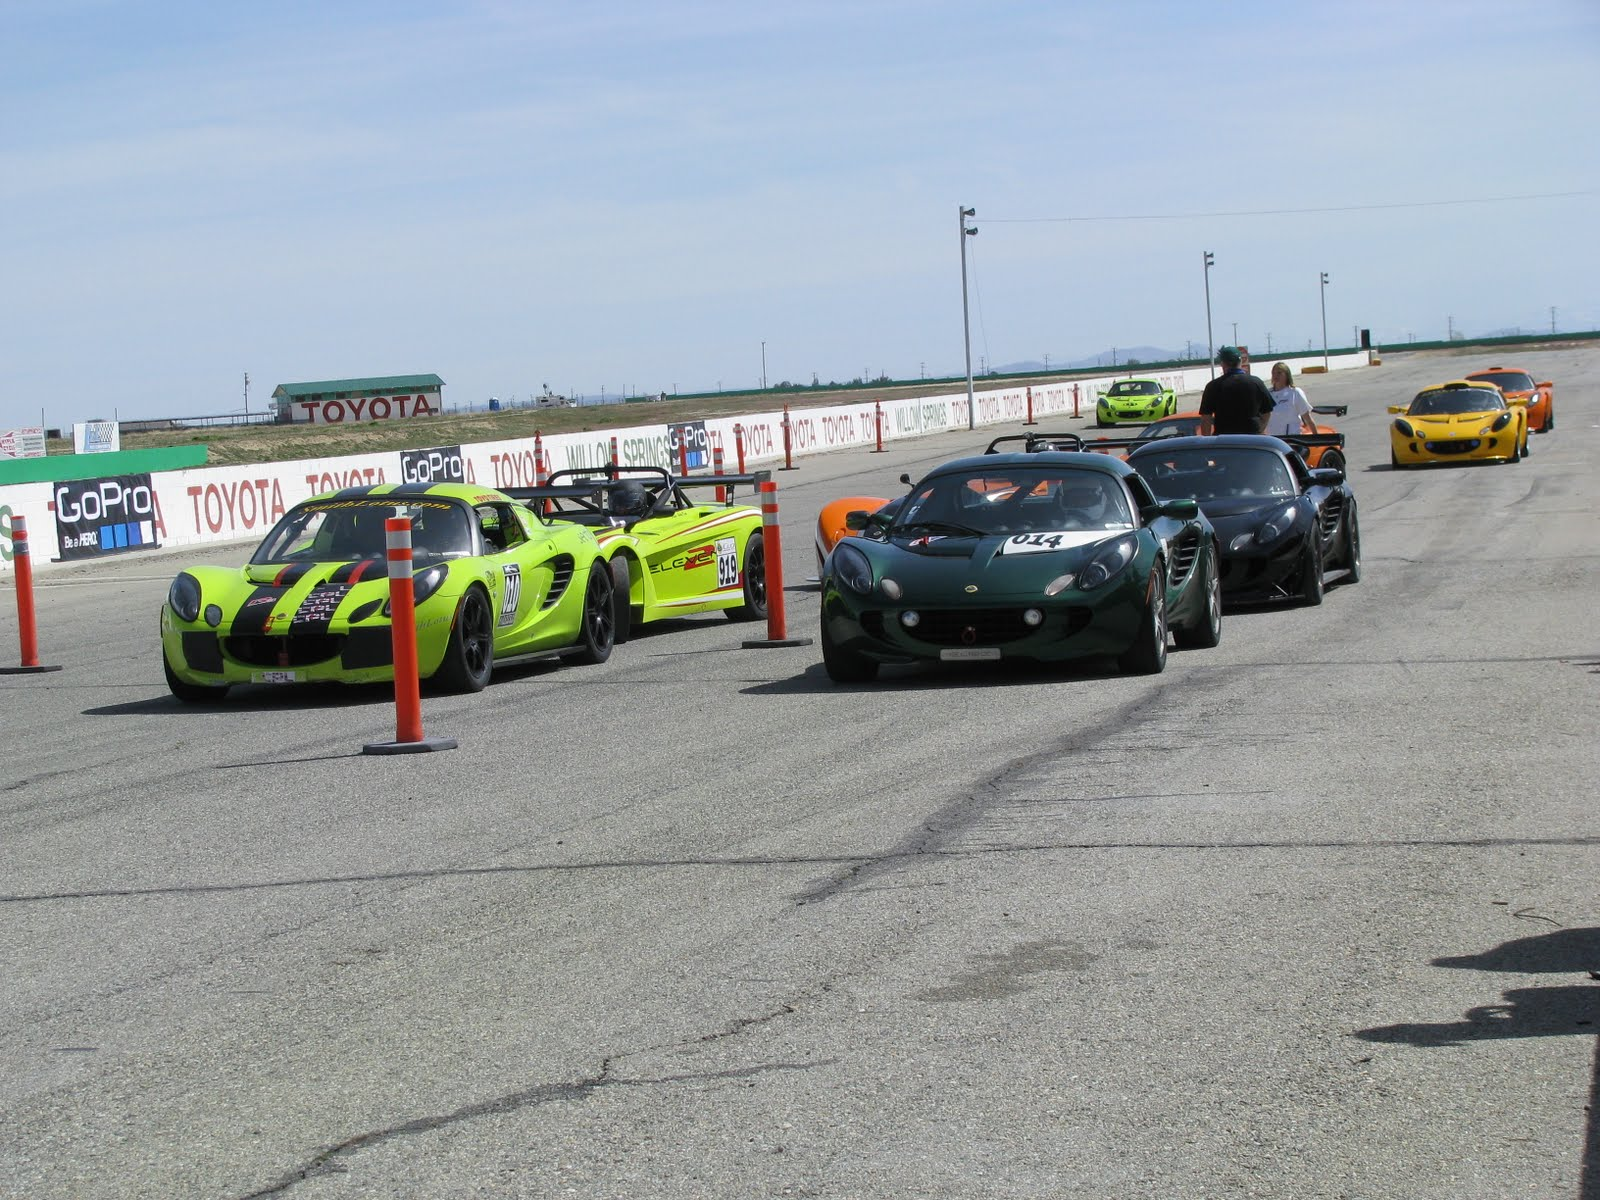 Lotus Cars Staging To Hit The Track During The First Practice Session In  The Lotus Cup USA Round 1 Challenge. Image Credit: Edmund Jenks (2011)